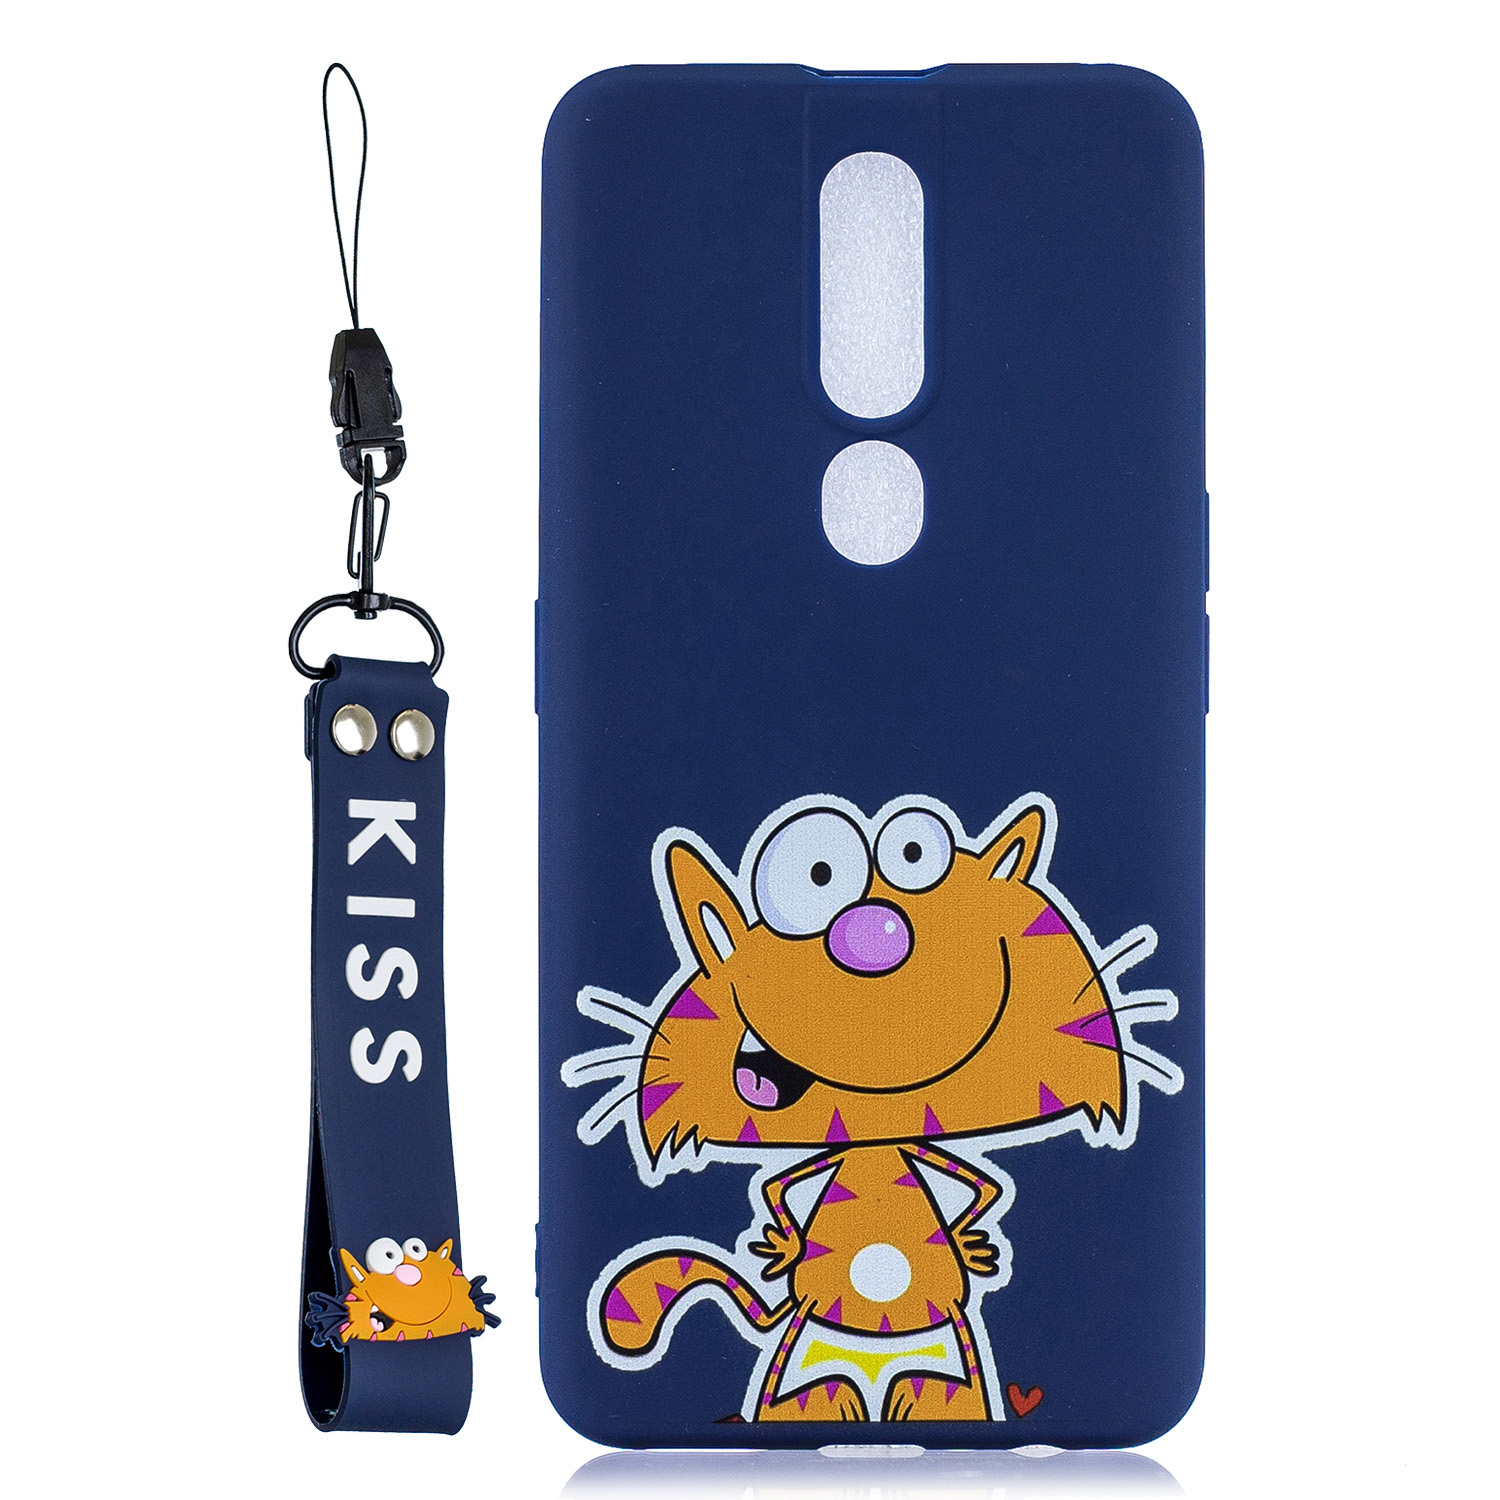 For OPPO F11 PRO Cartoon Lovely Coloured Painted Soft TPU Back Cover Non-slip Shockproof Full Protective Case with Lanyard sapphire